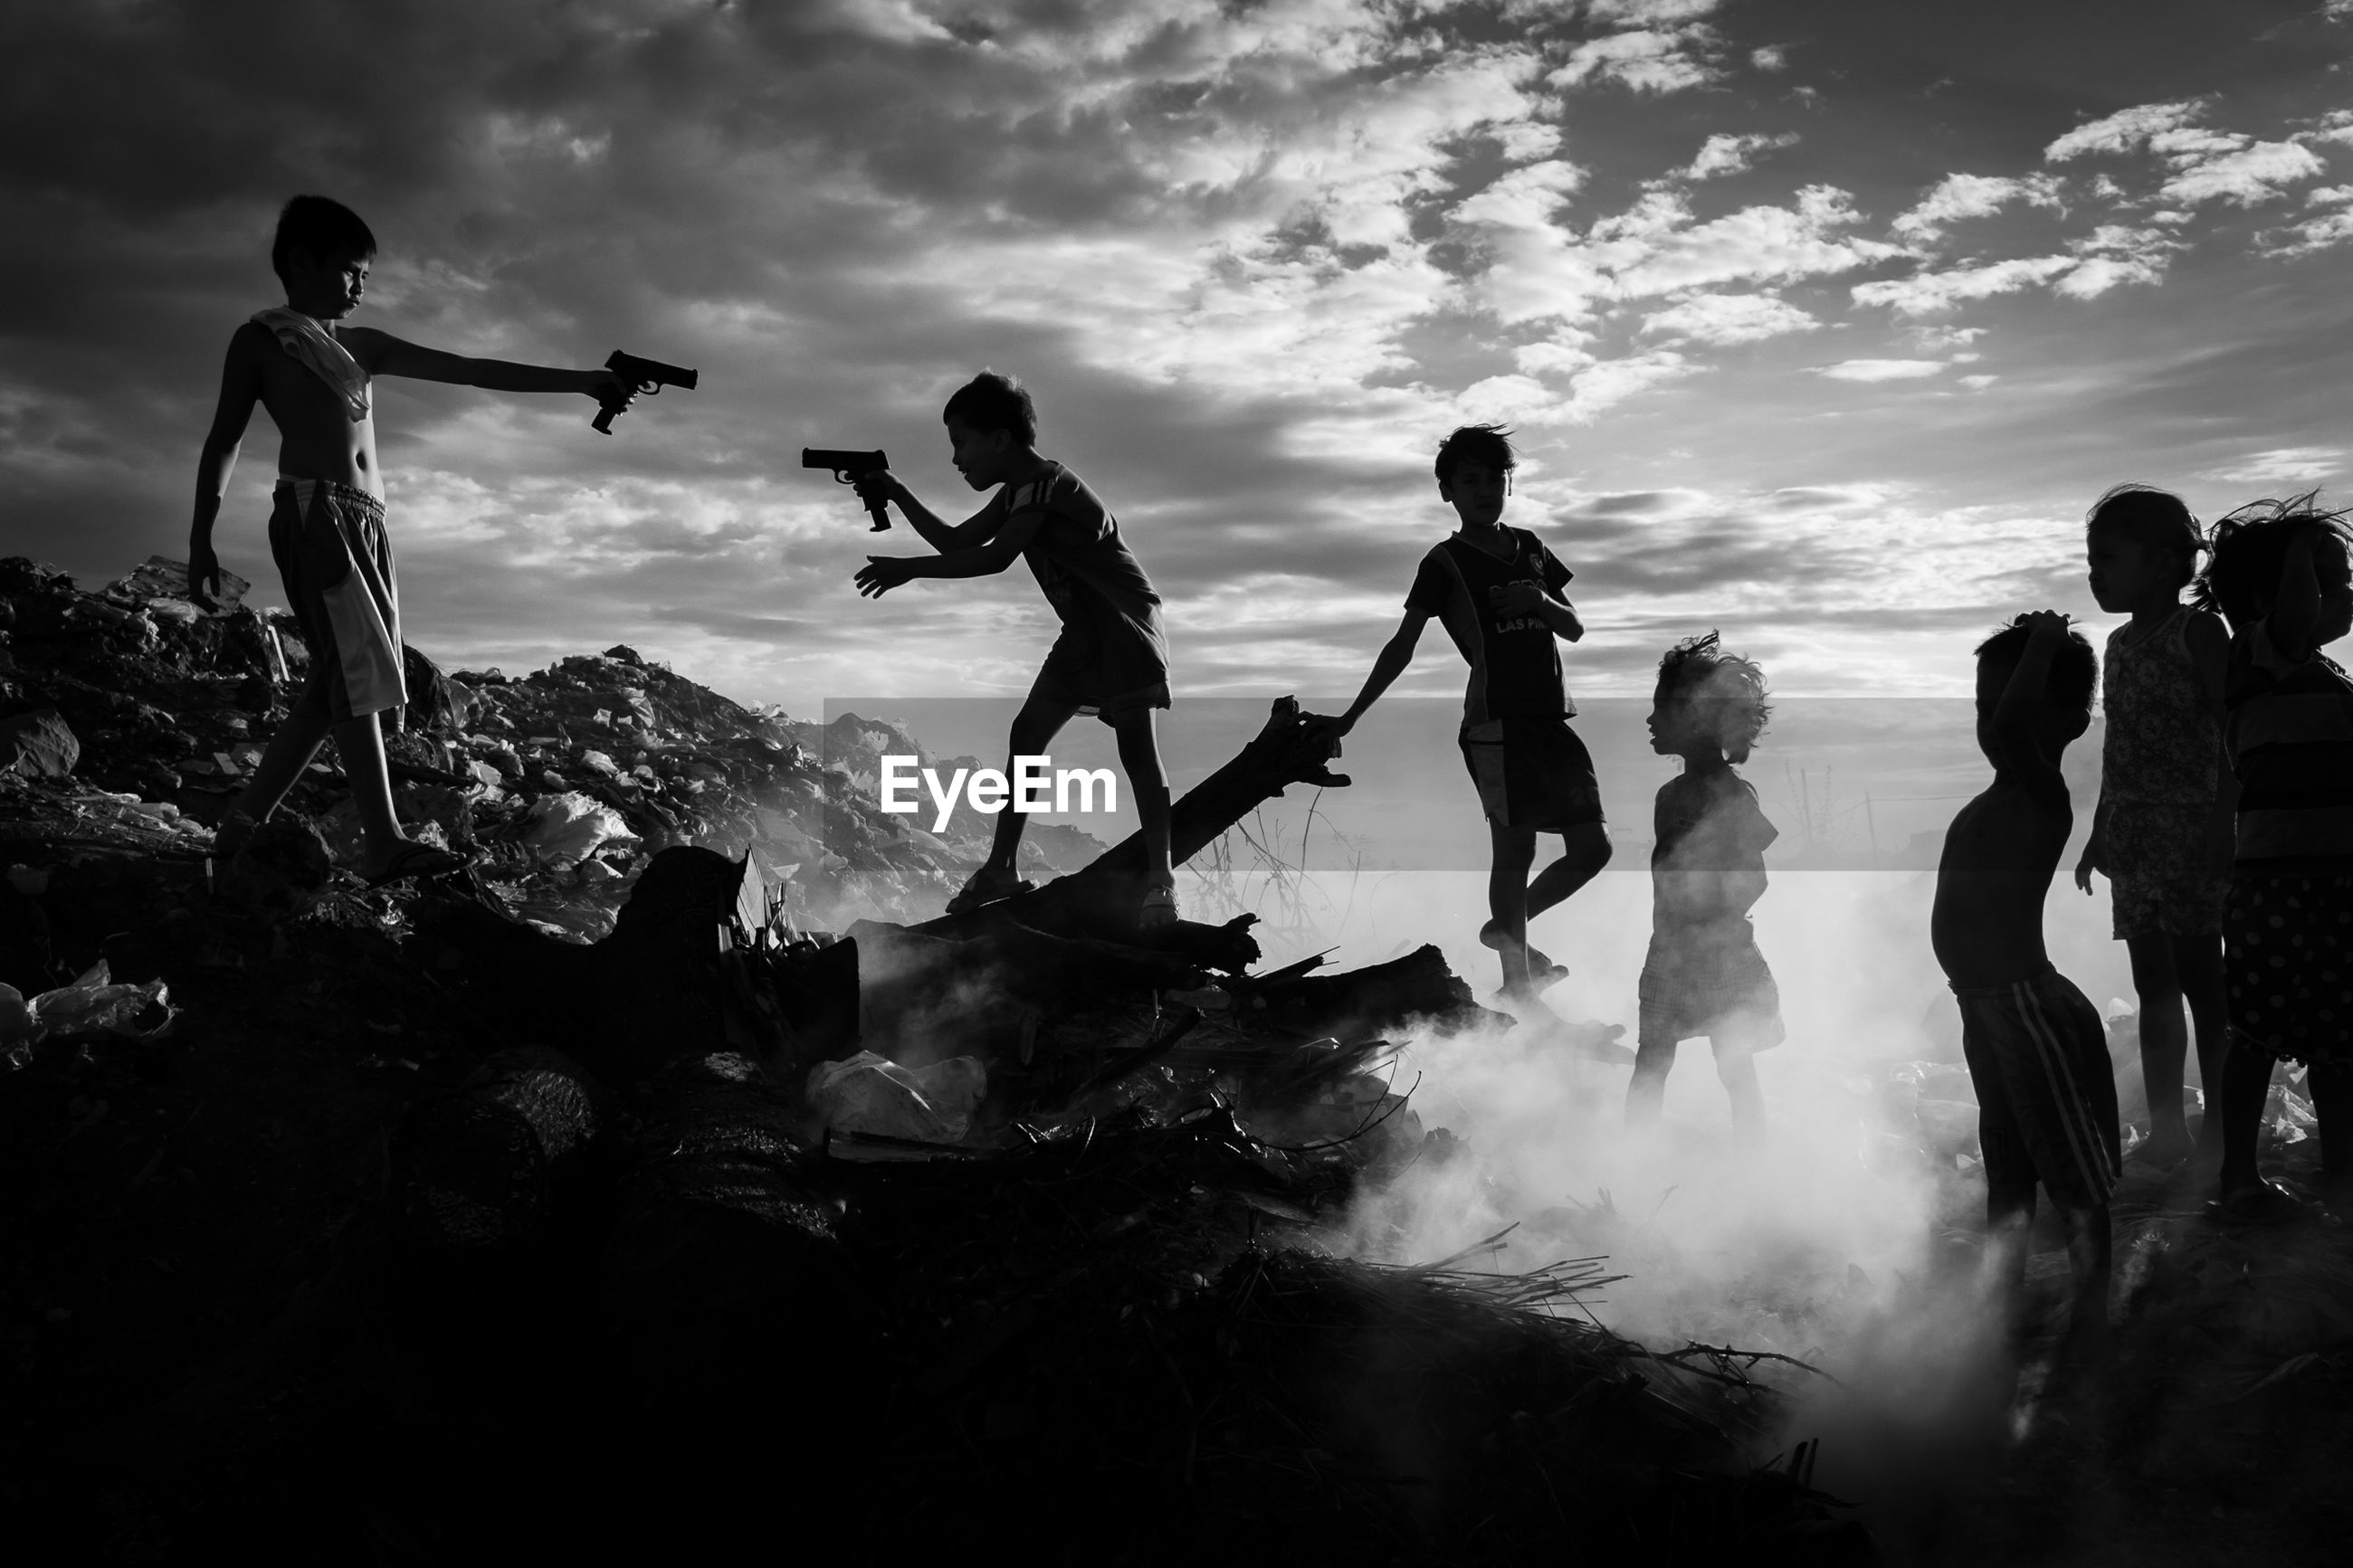 group of people, real people, sky, leisure activity, cloud - sky, men, nature, lifestyles, sport, people, adventure, enjoyment, scenics - nature, motion, beauty in nature, water, land, mountain, activity, group, outdoors